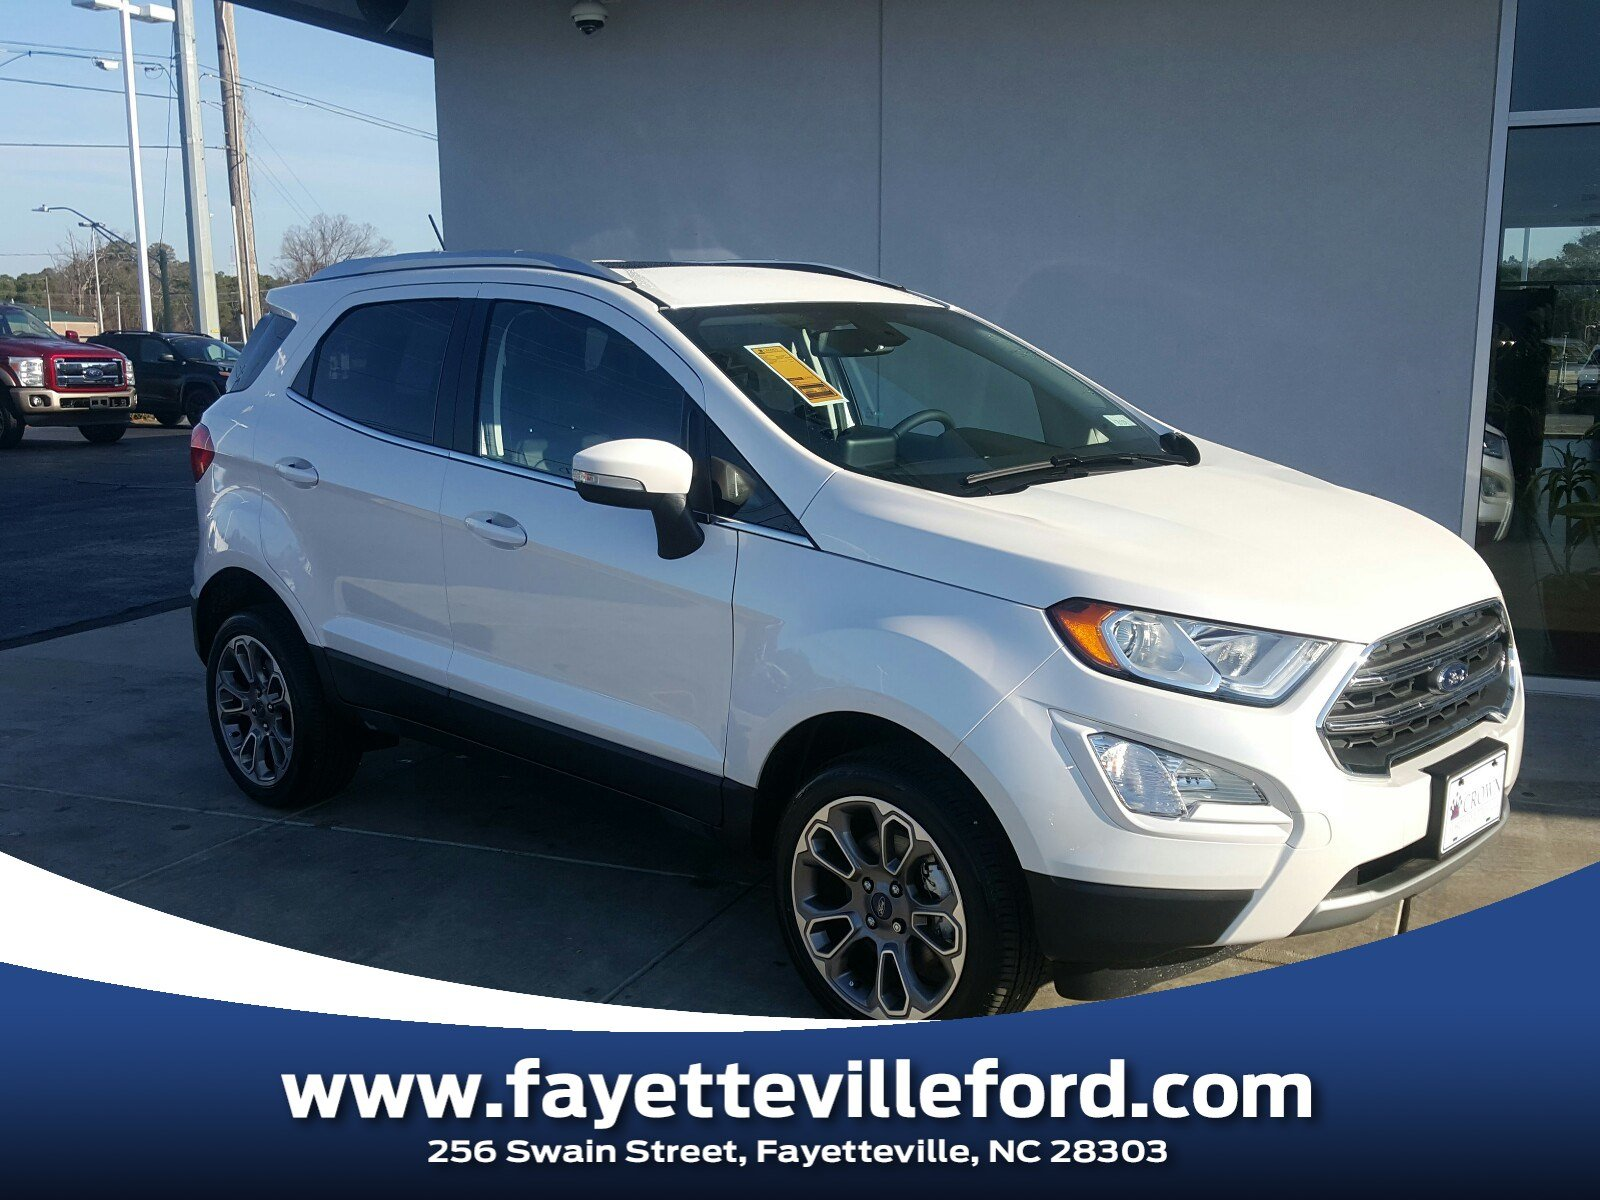 Ford Fayetteville Nc >> Crown Ford Fayetteville Featured New Vehicles North Carolina